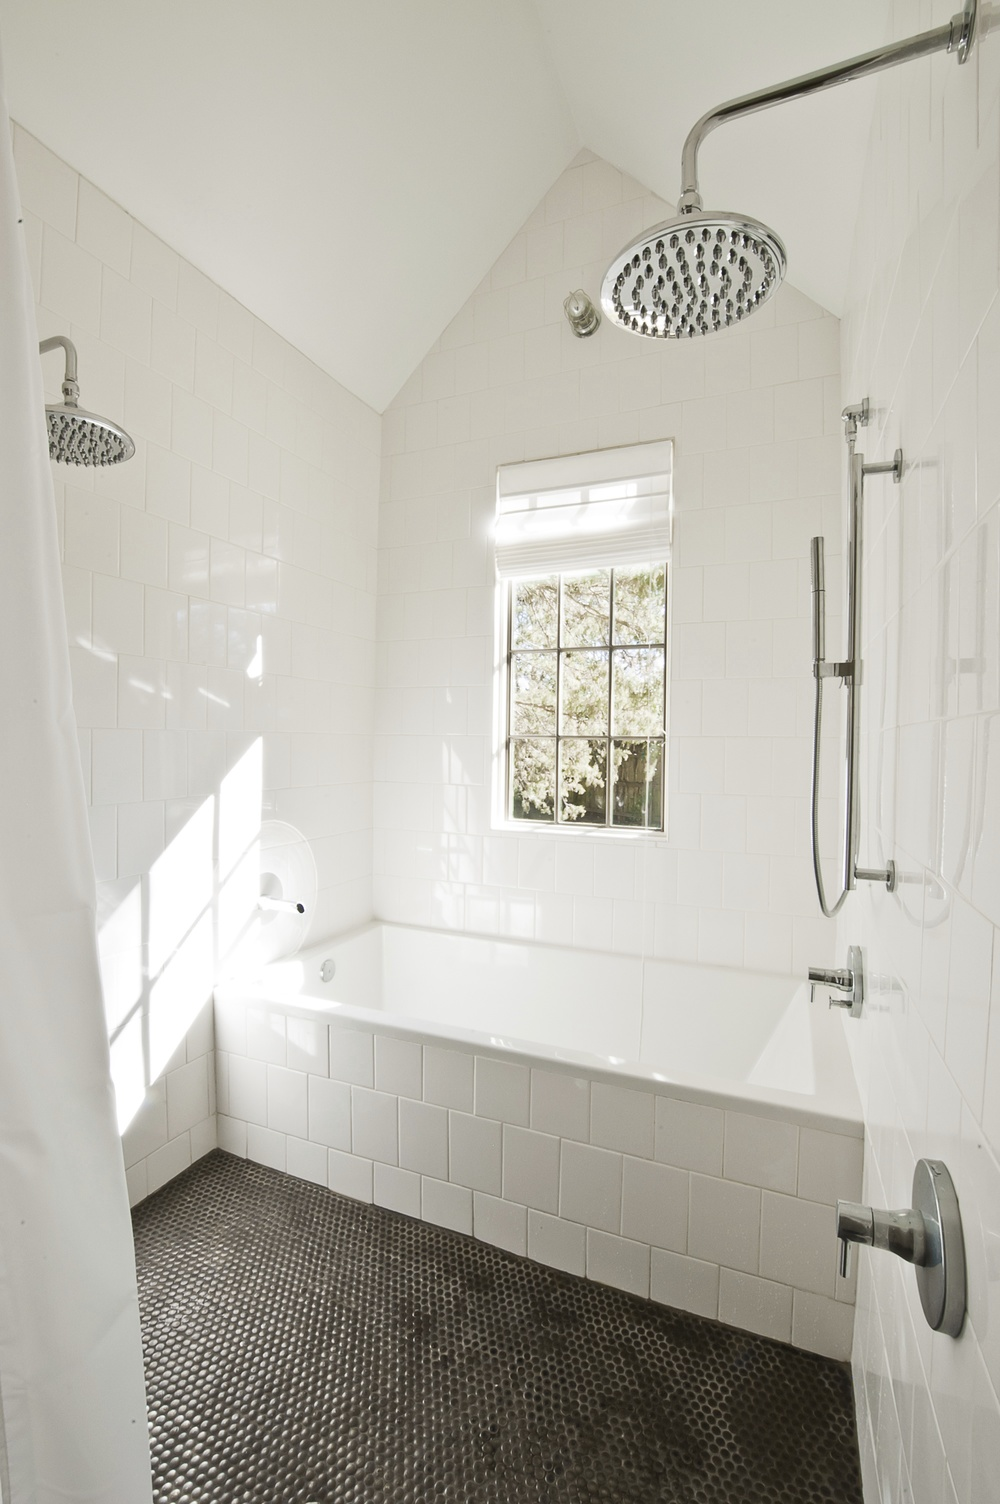 New construction david anderson architect for Wet floor bathroom designs